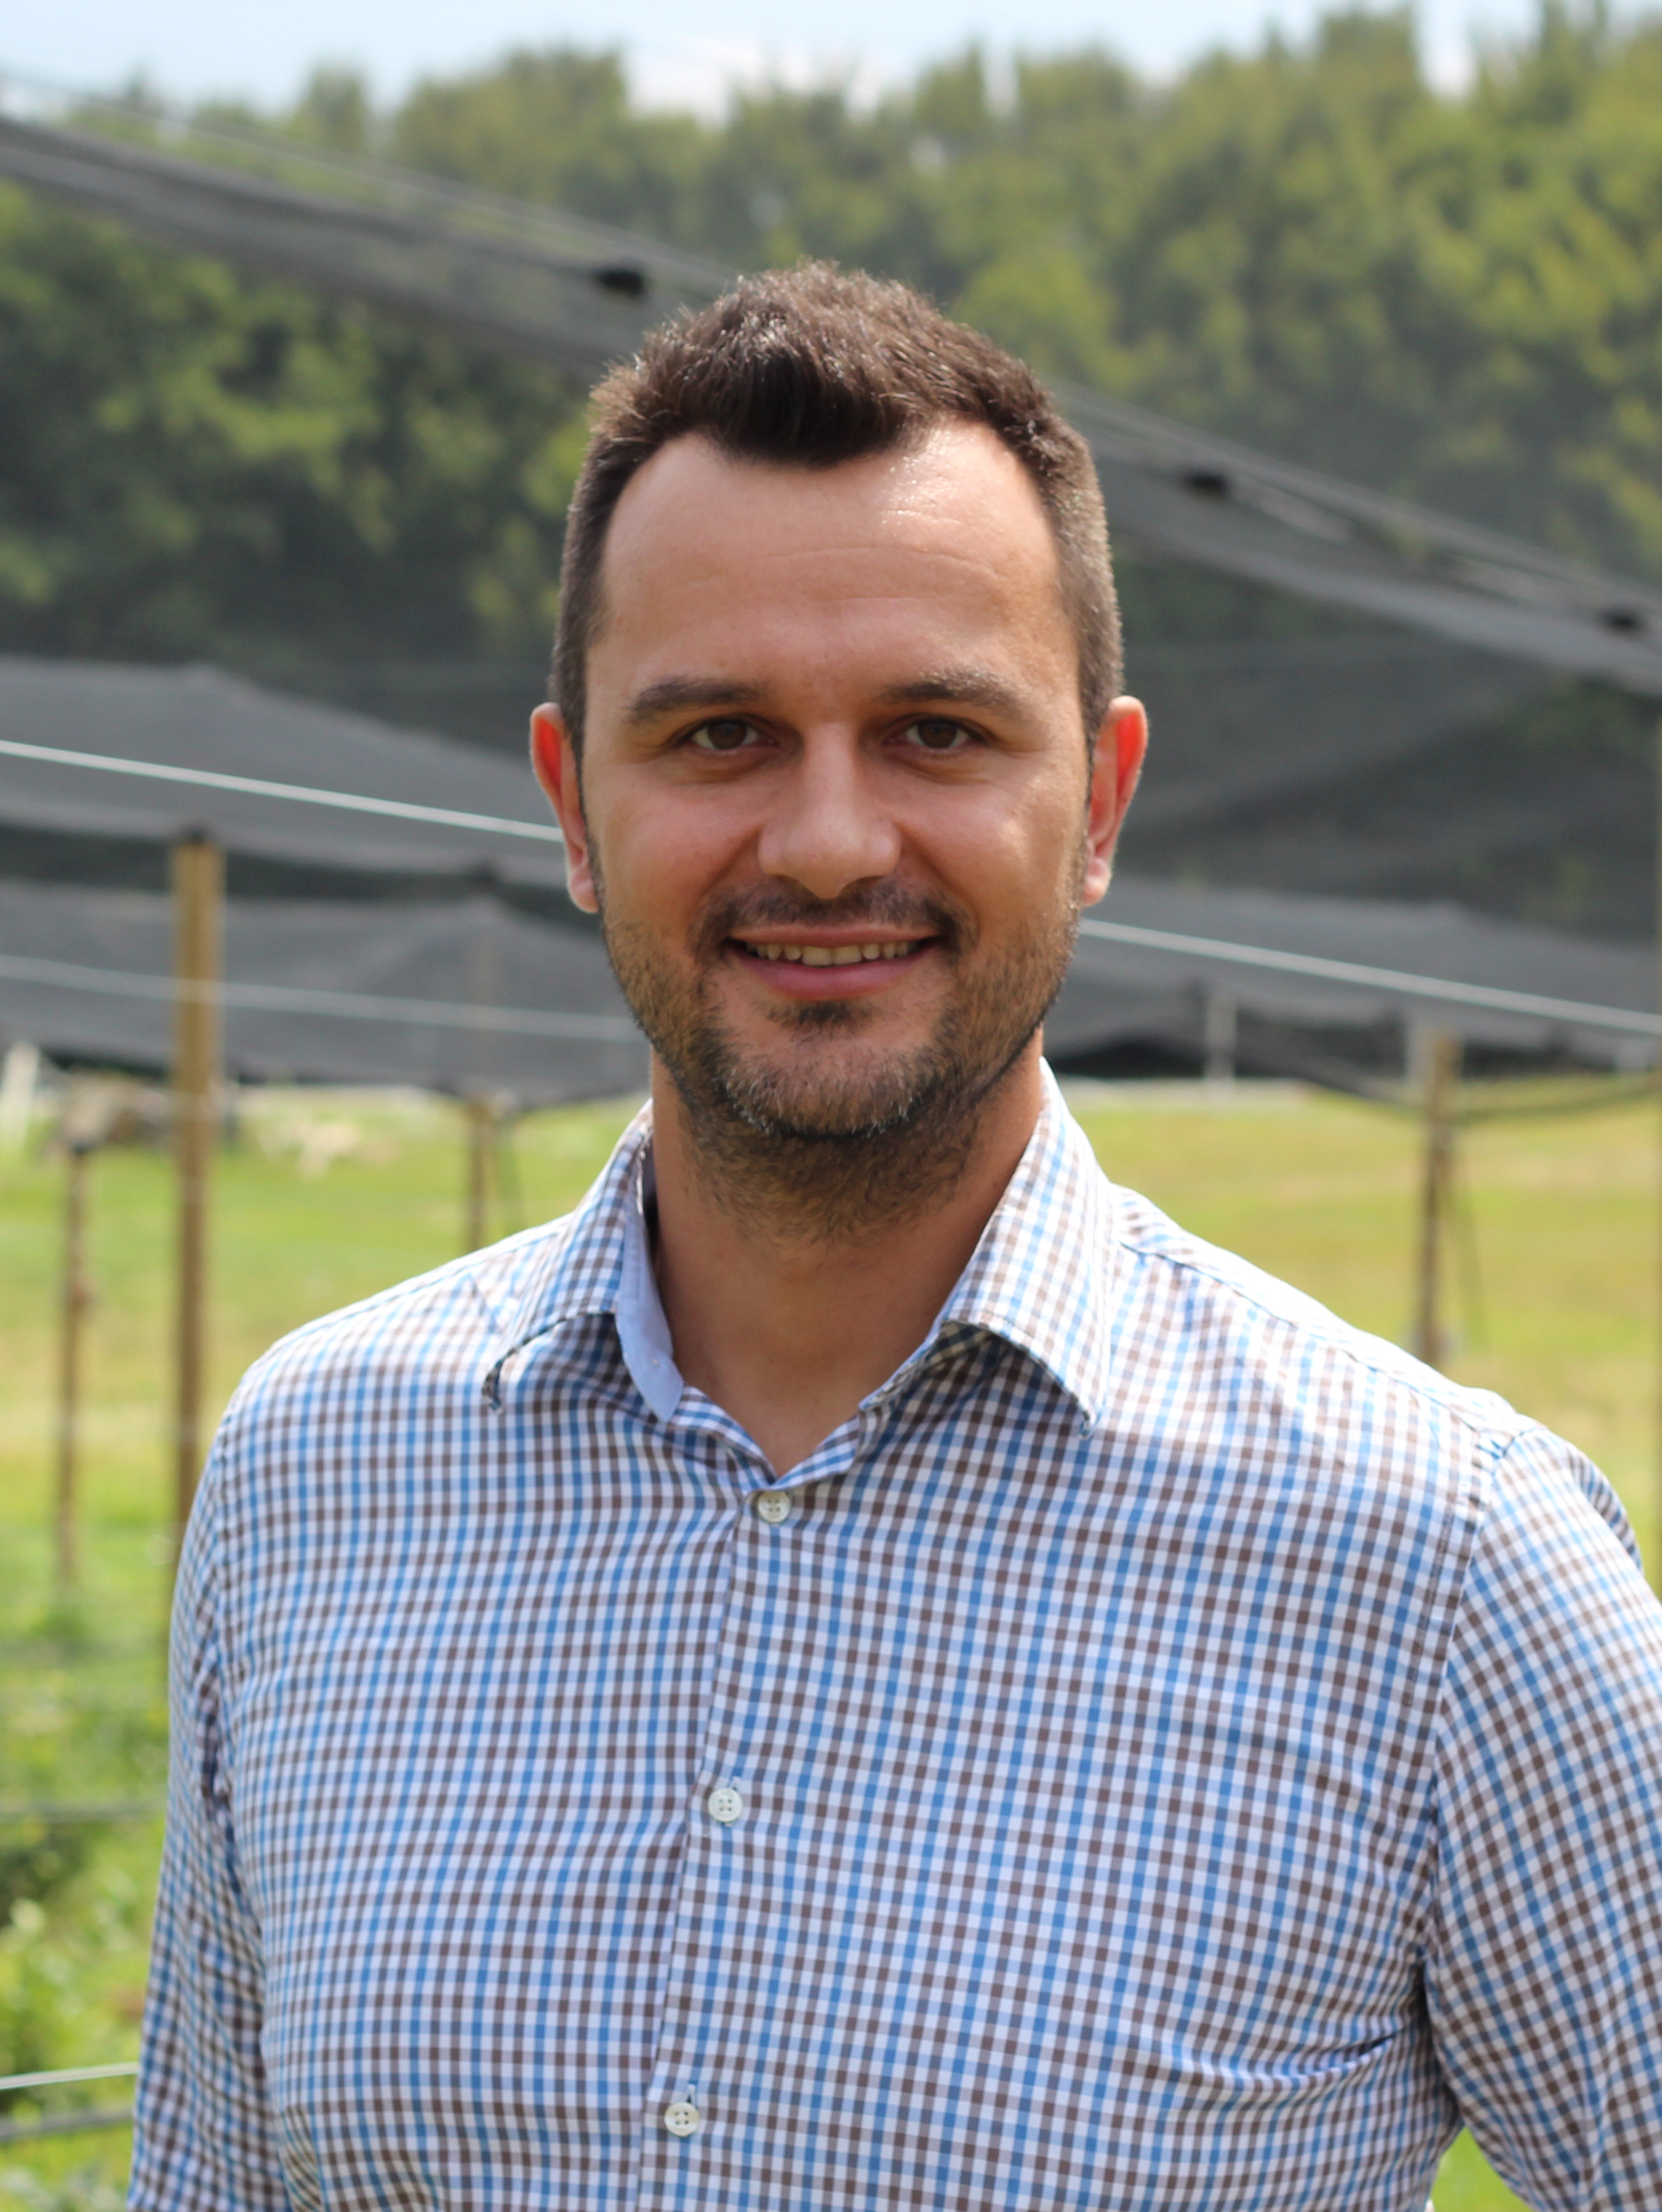 Matija Zulj, CEO and Founder at Agrivi.